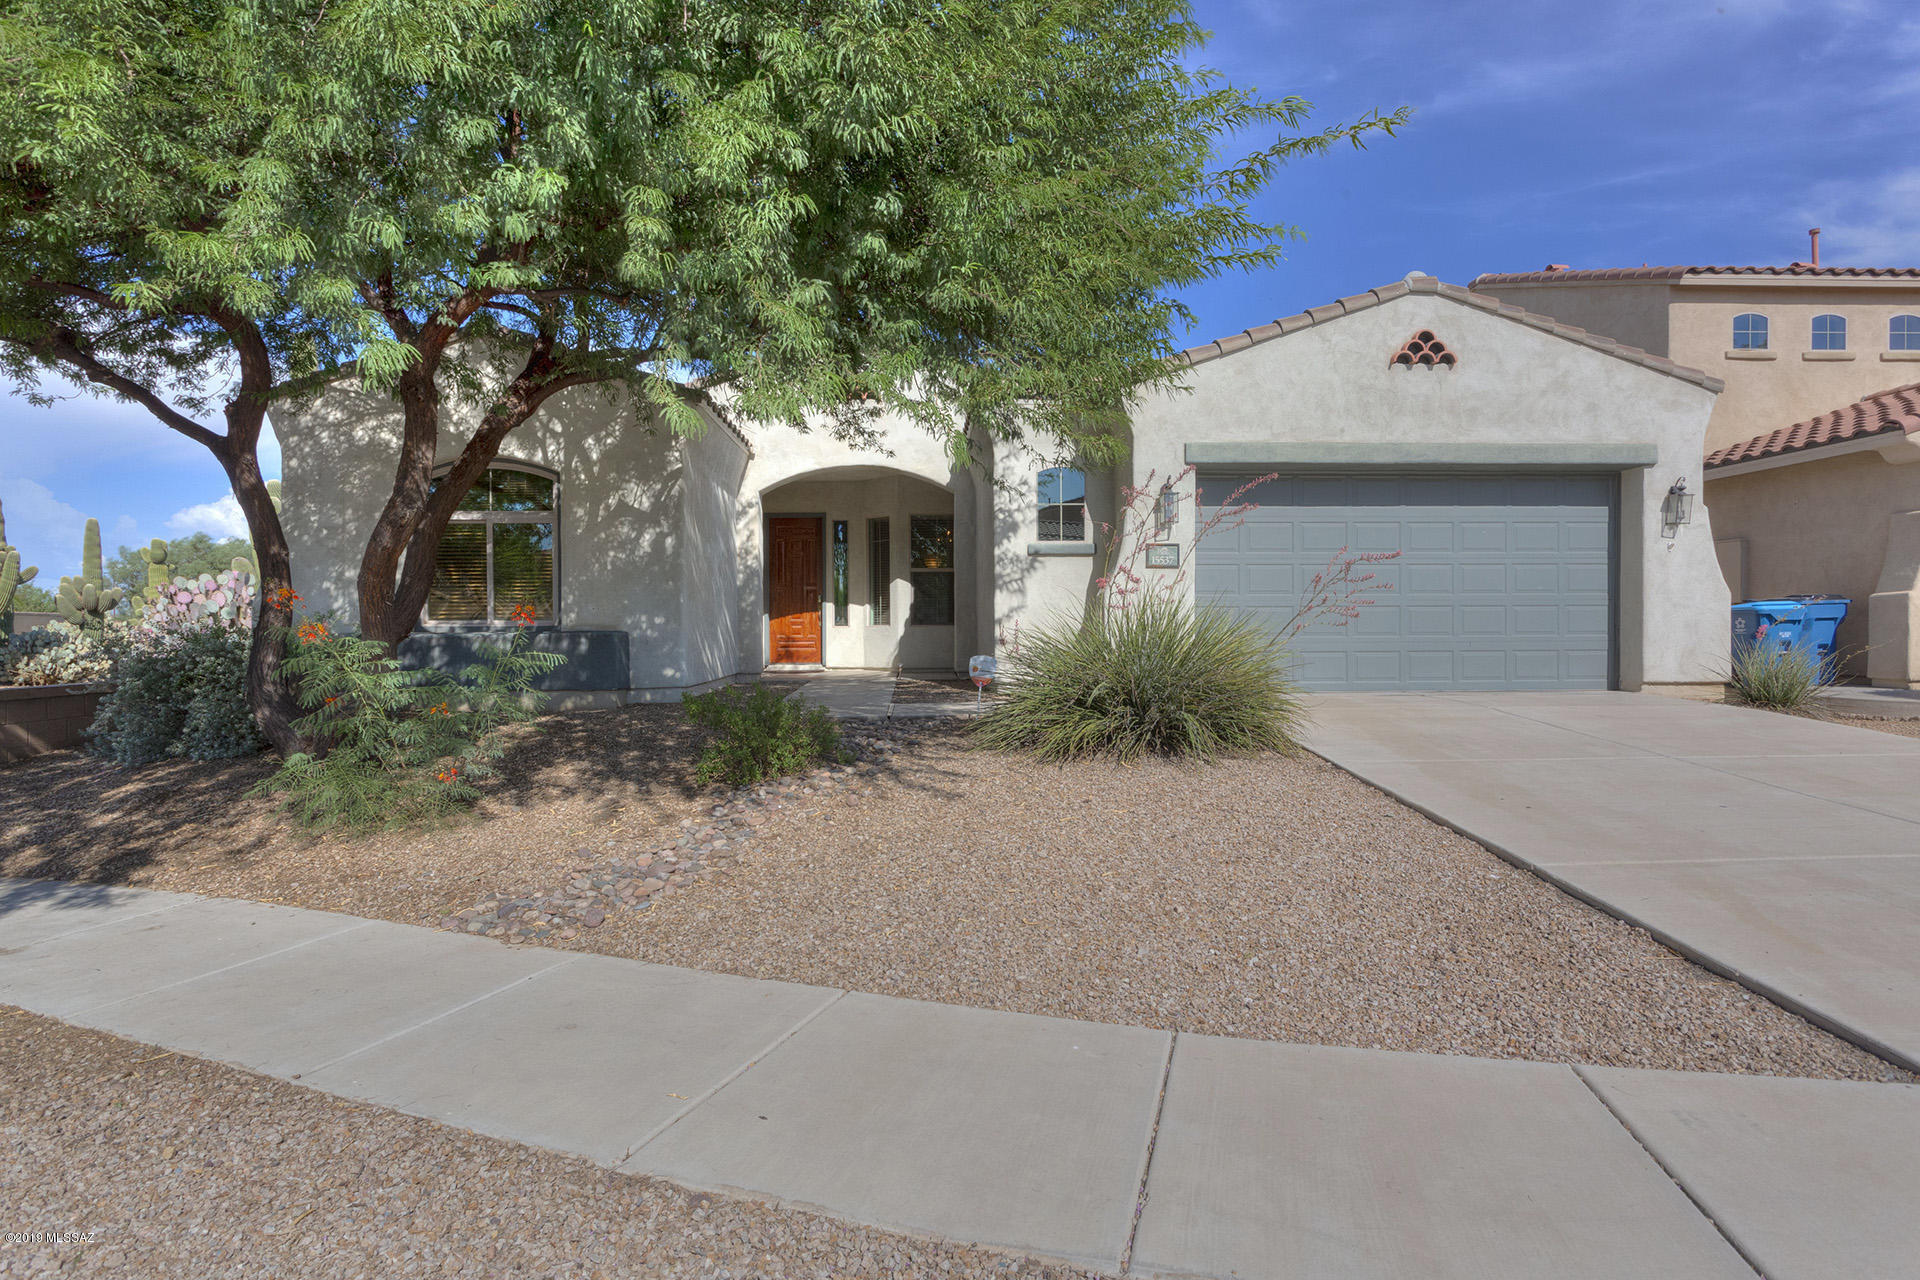 Photo of 15537 S Via Puente Azul, Sahuarita, AZ 85629